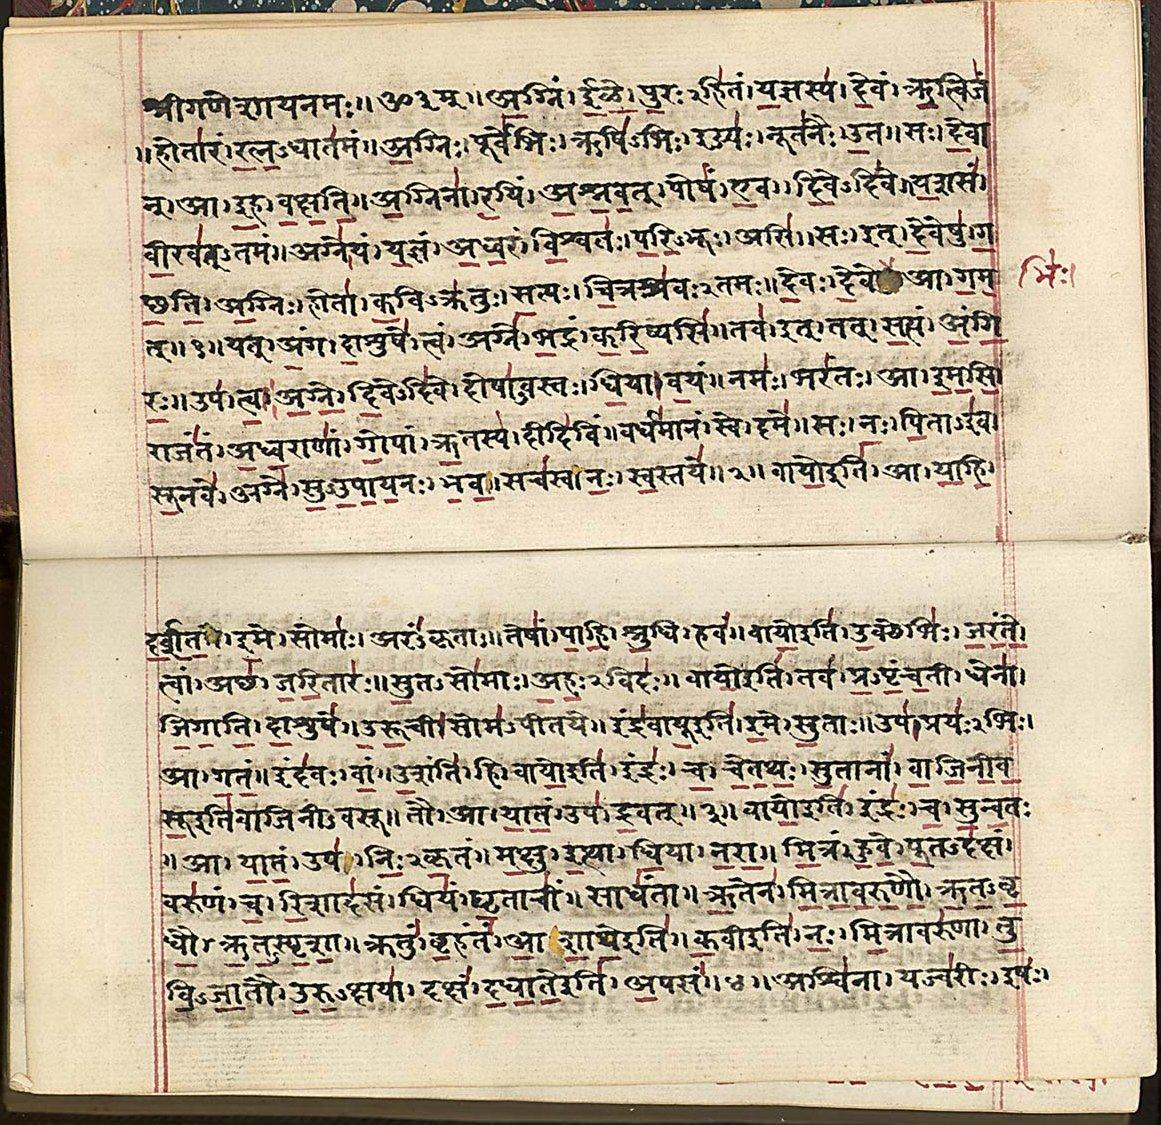 Public Domain, Rig Veda Manuscript, http://www.nb.no/baser/ schoyen/5/5.20/ms2097.jpg, https://commons.wikimedia.org/w/ index.ph